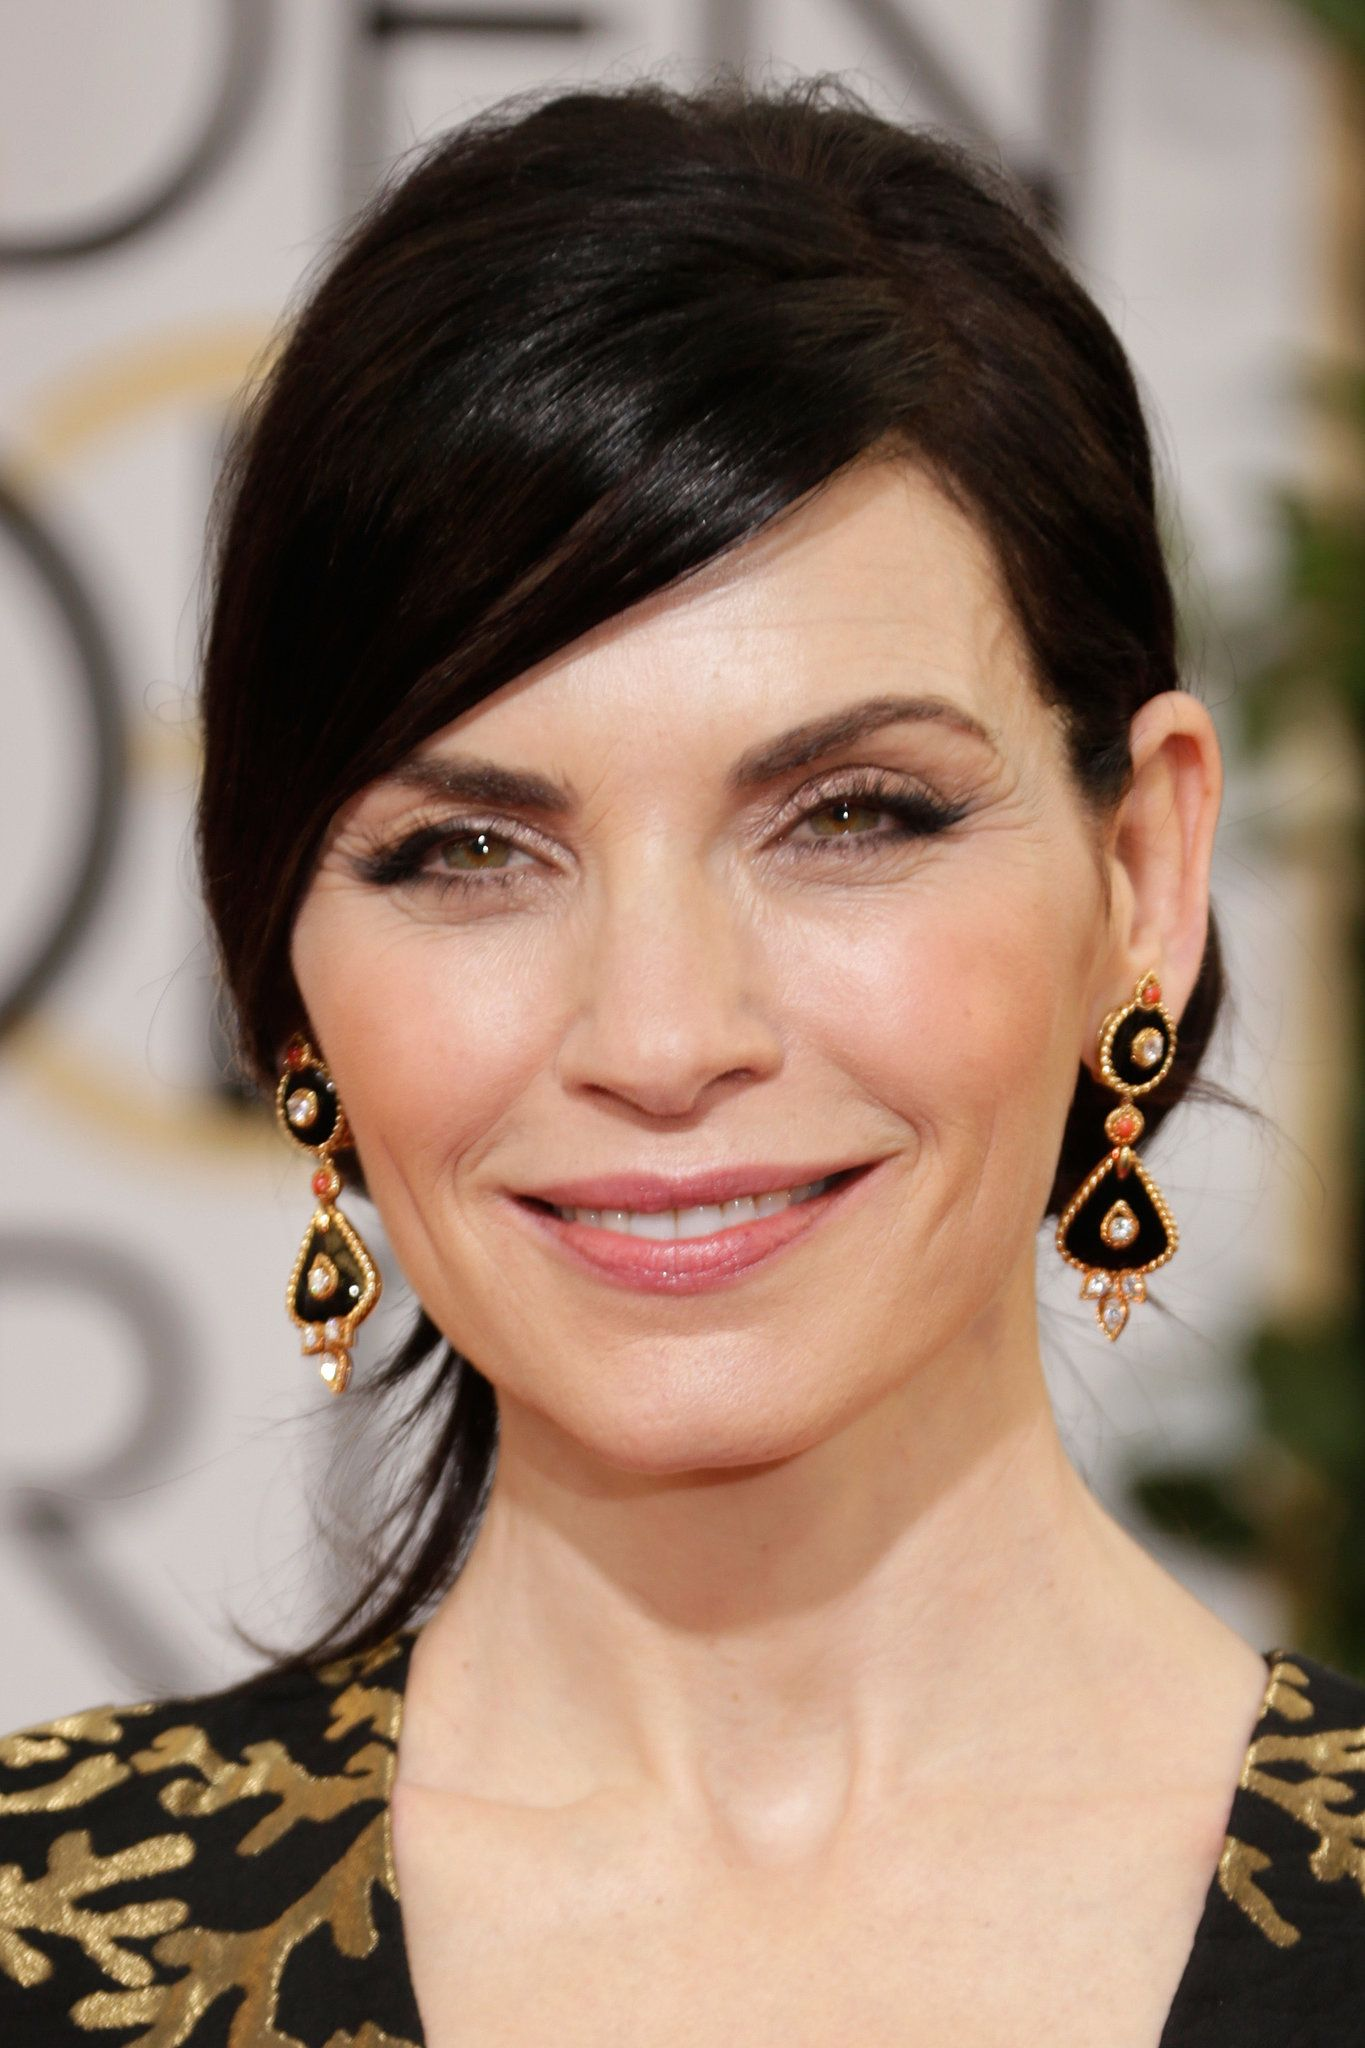 julianna margulies news